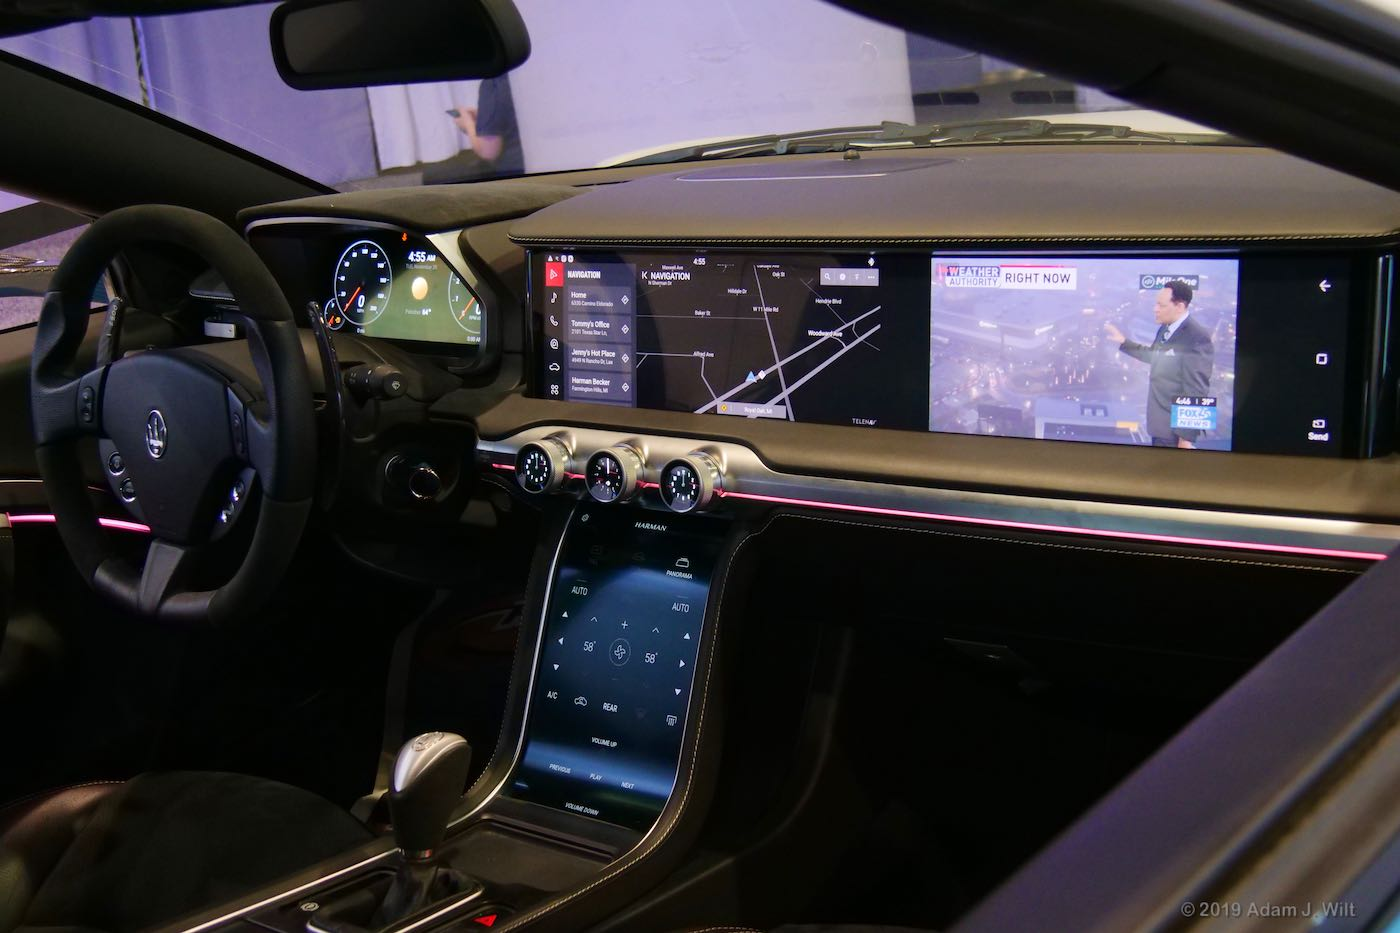 Harman's infotainment stack in a Maserati